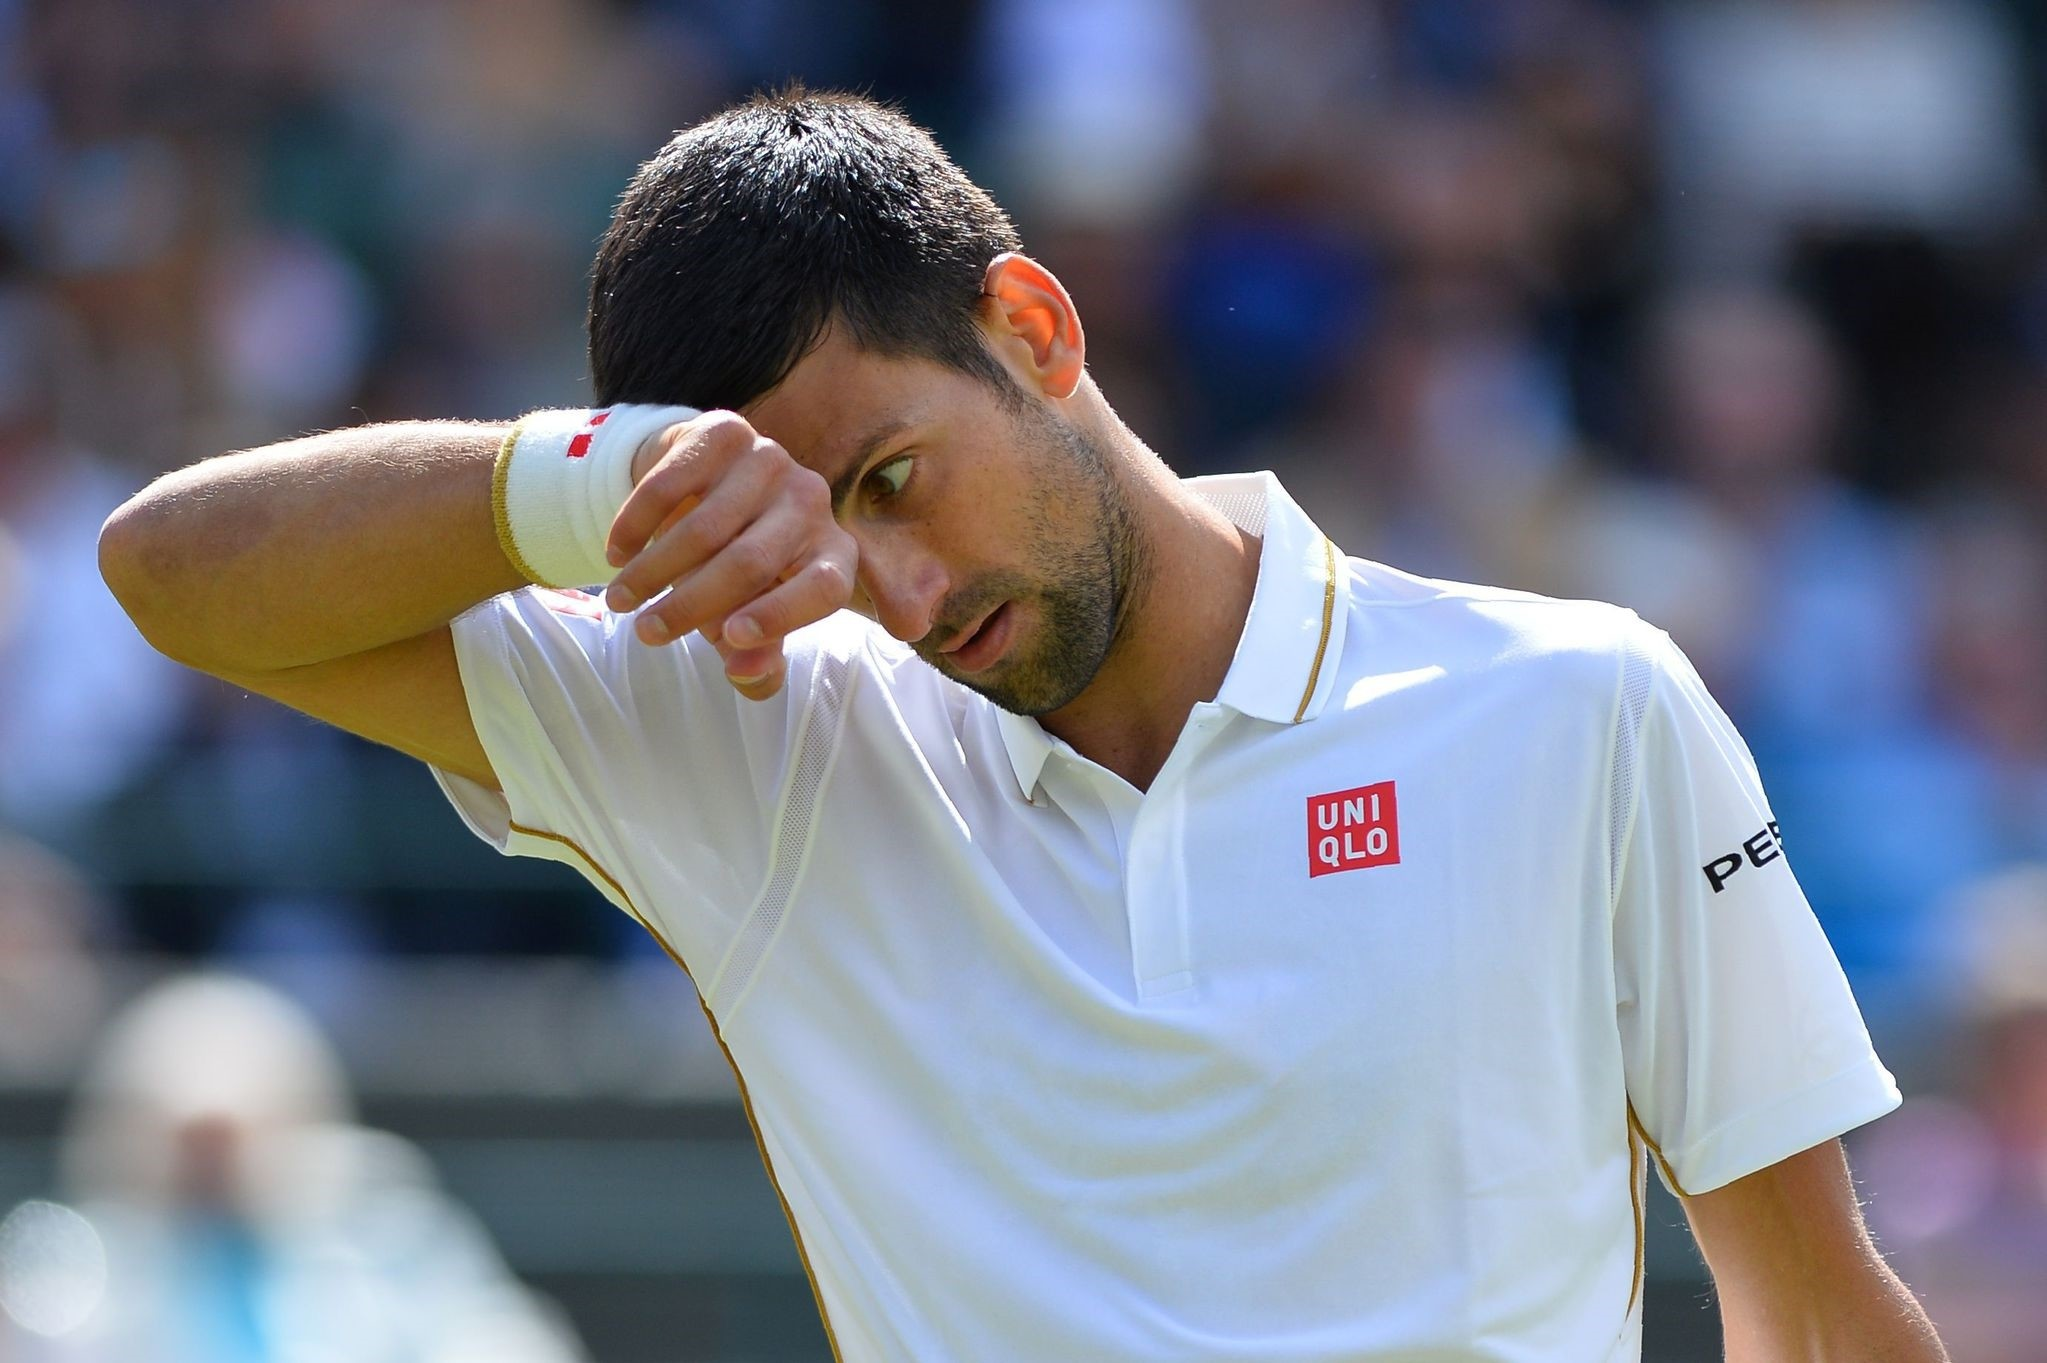 Serbia's Novak Djokovic wipes his brow while playing US player Sam Querrey during their men's singles third round match on the sixth day of the 2016 Wimbledon Championships. (AFP Photo)